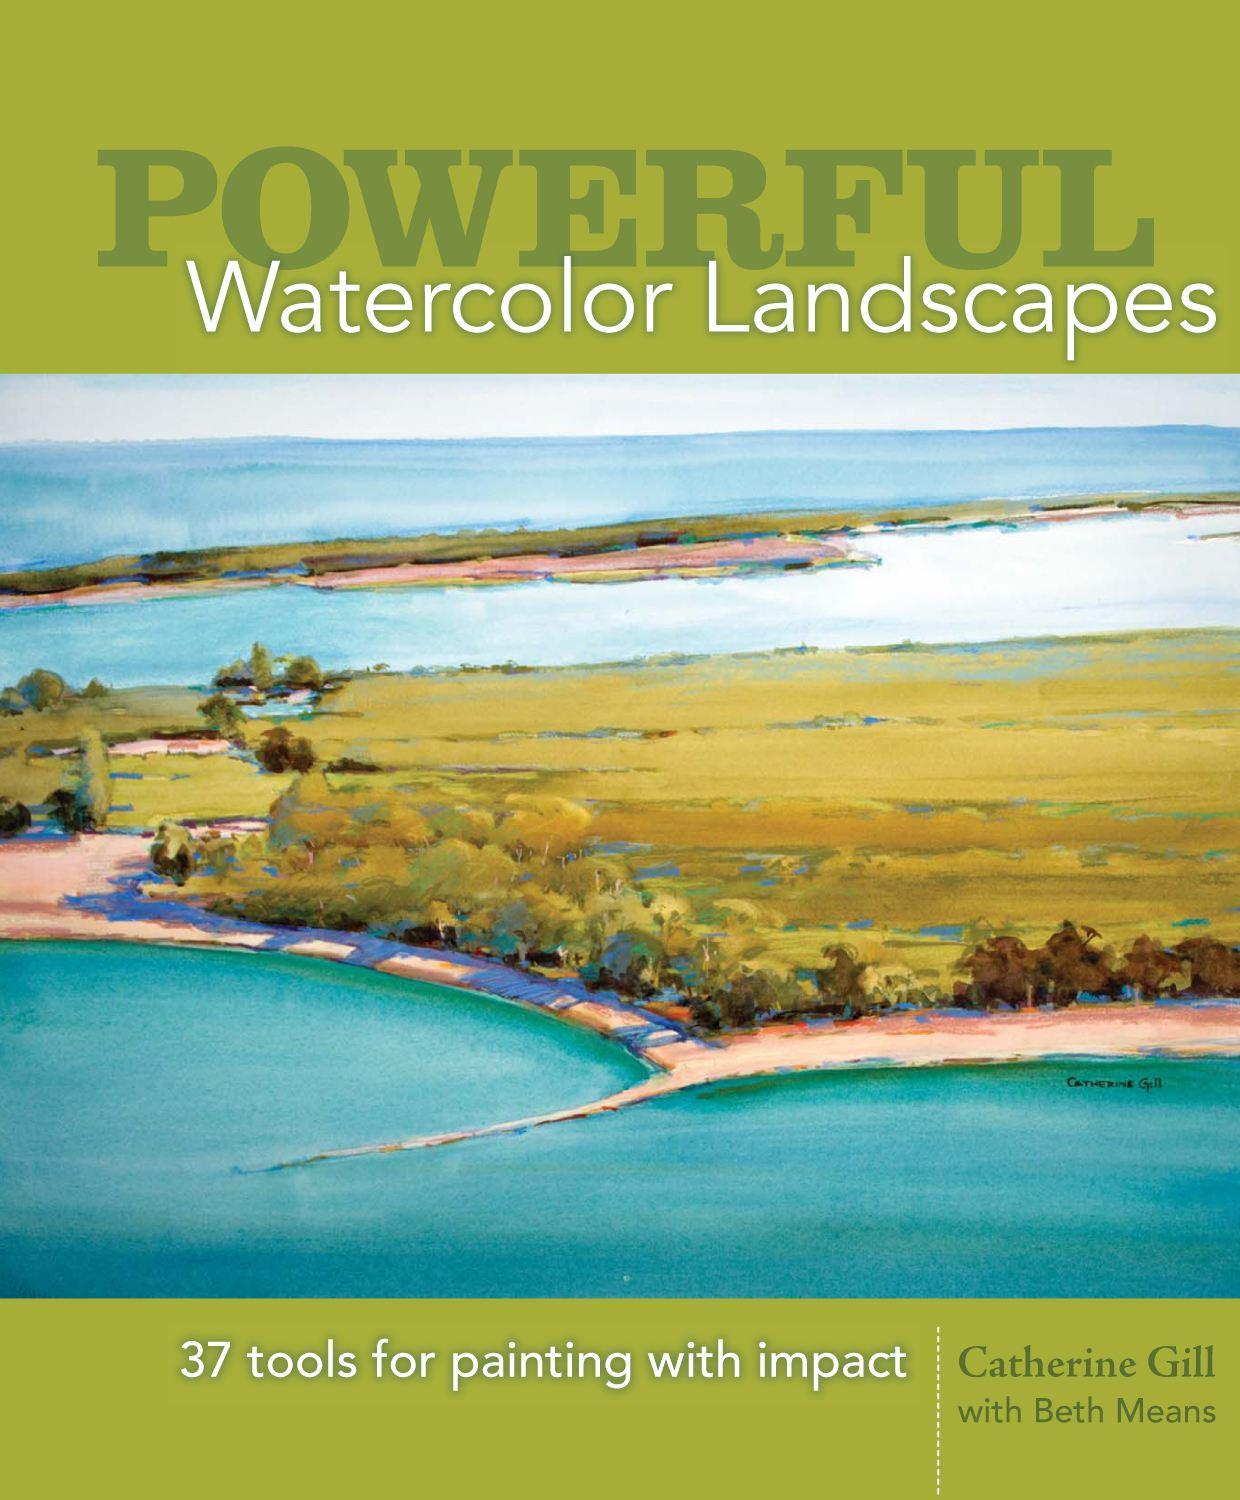 Powerful Watercolor Landscapes: Tools for Painting with Impact